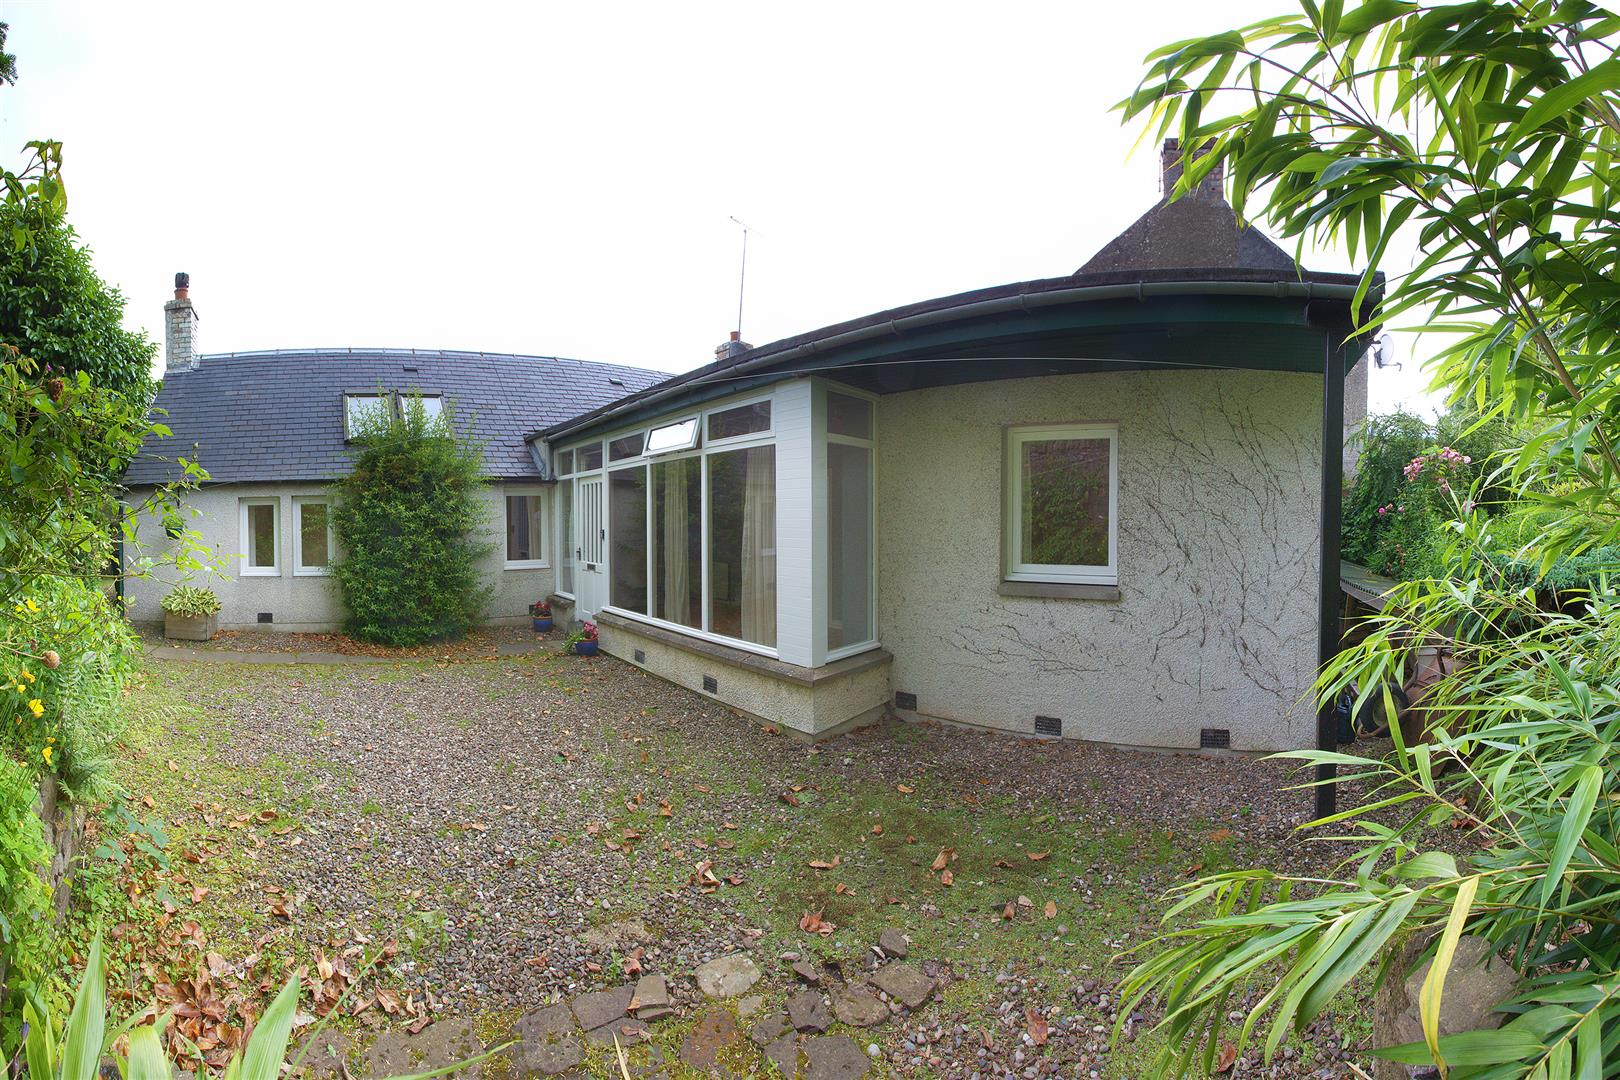 Auchterarder Road, Dunning, Perthshire, PH2 0RJ, UK